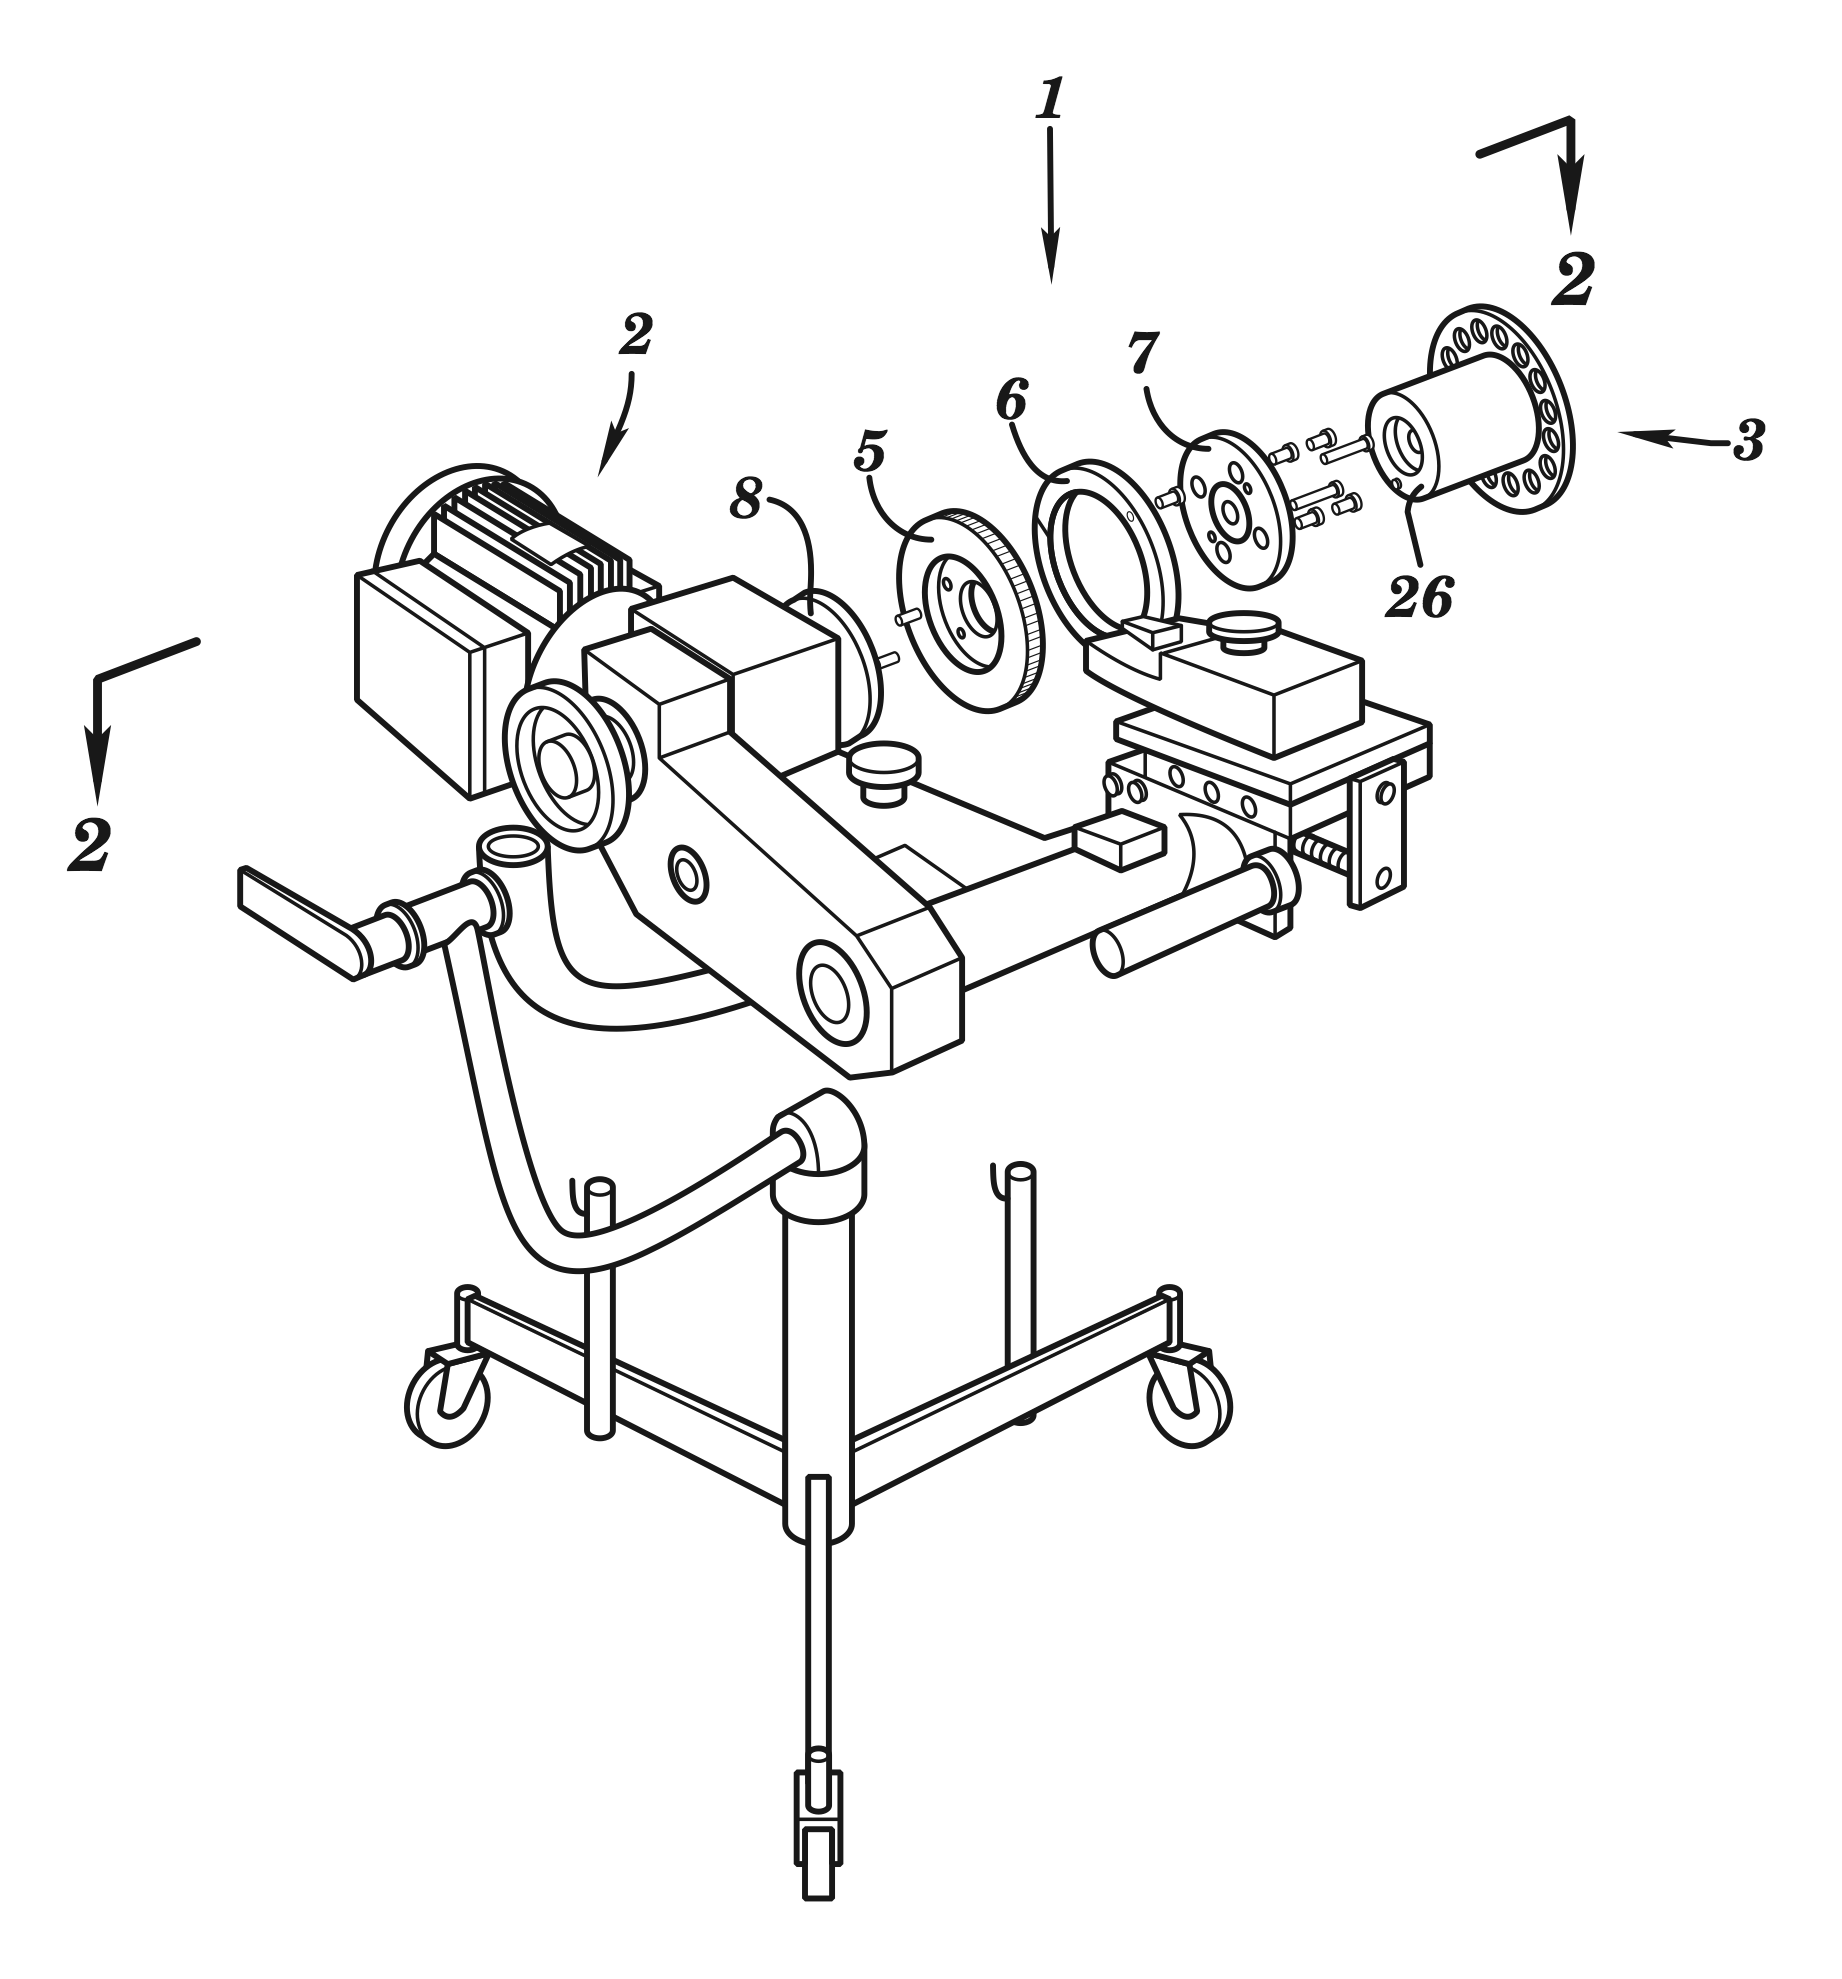 47_ptiserviceco_patent_drawing_mechanical.png